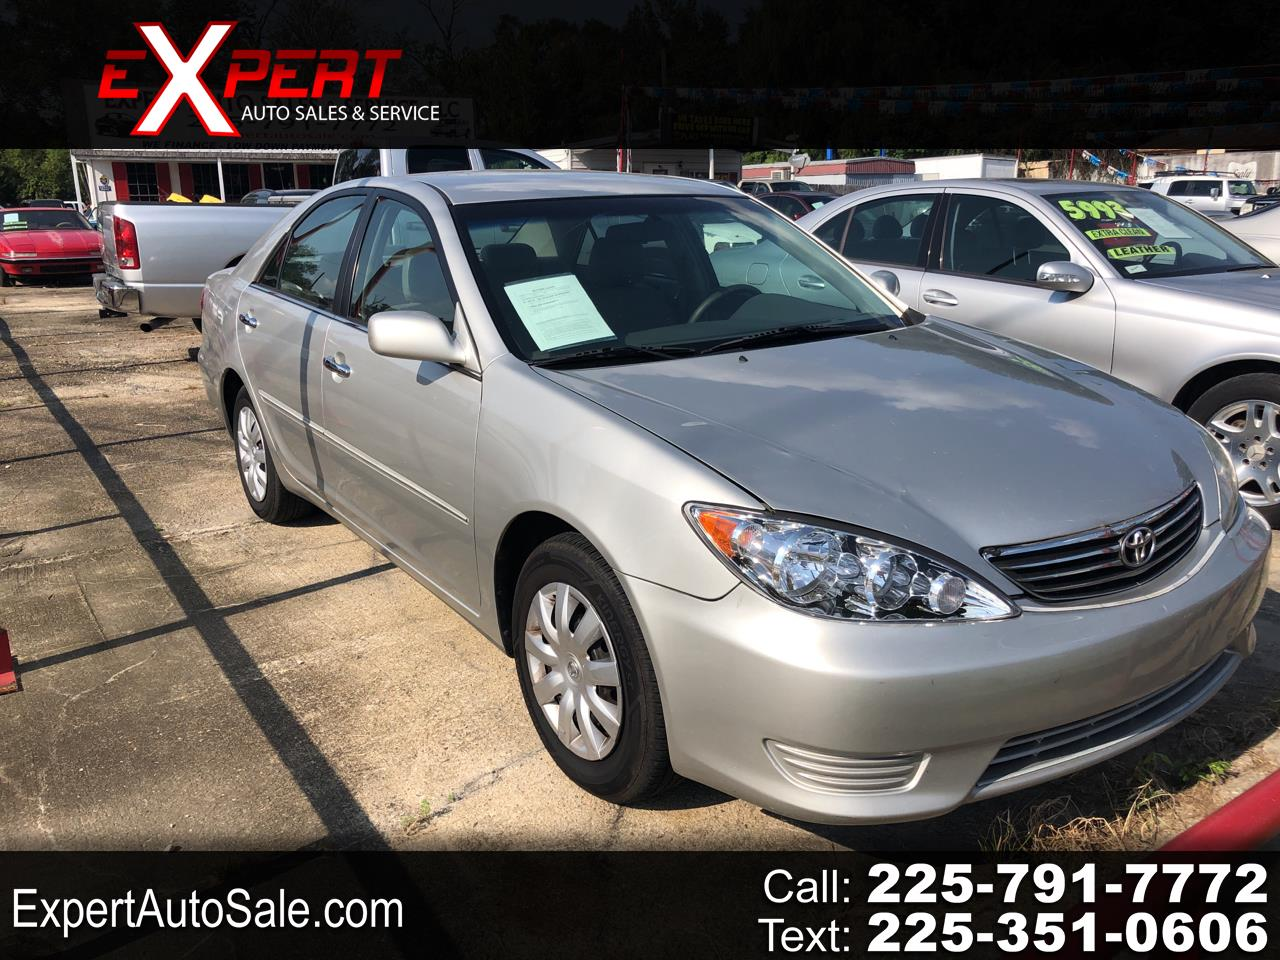 2006 Toyota Camry For Sale >> Used 2006 Toyota Camry In Baton Rouge La Auto Com 4t1be32k36u115277